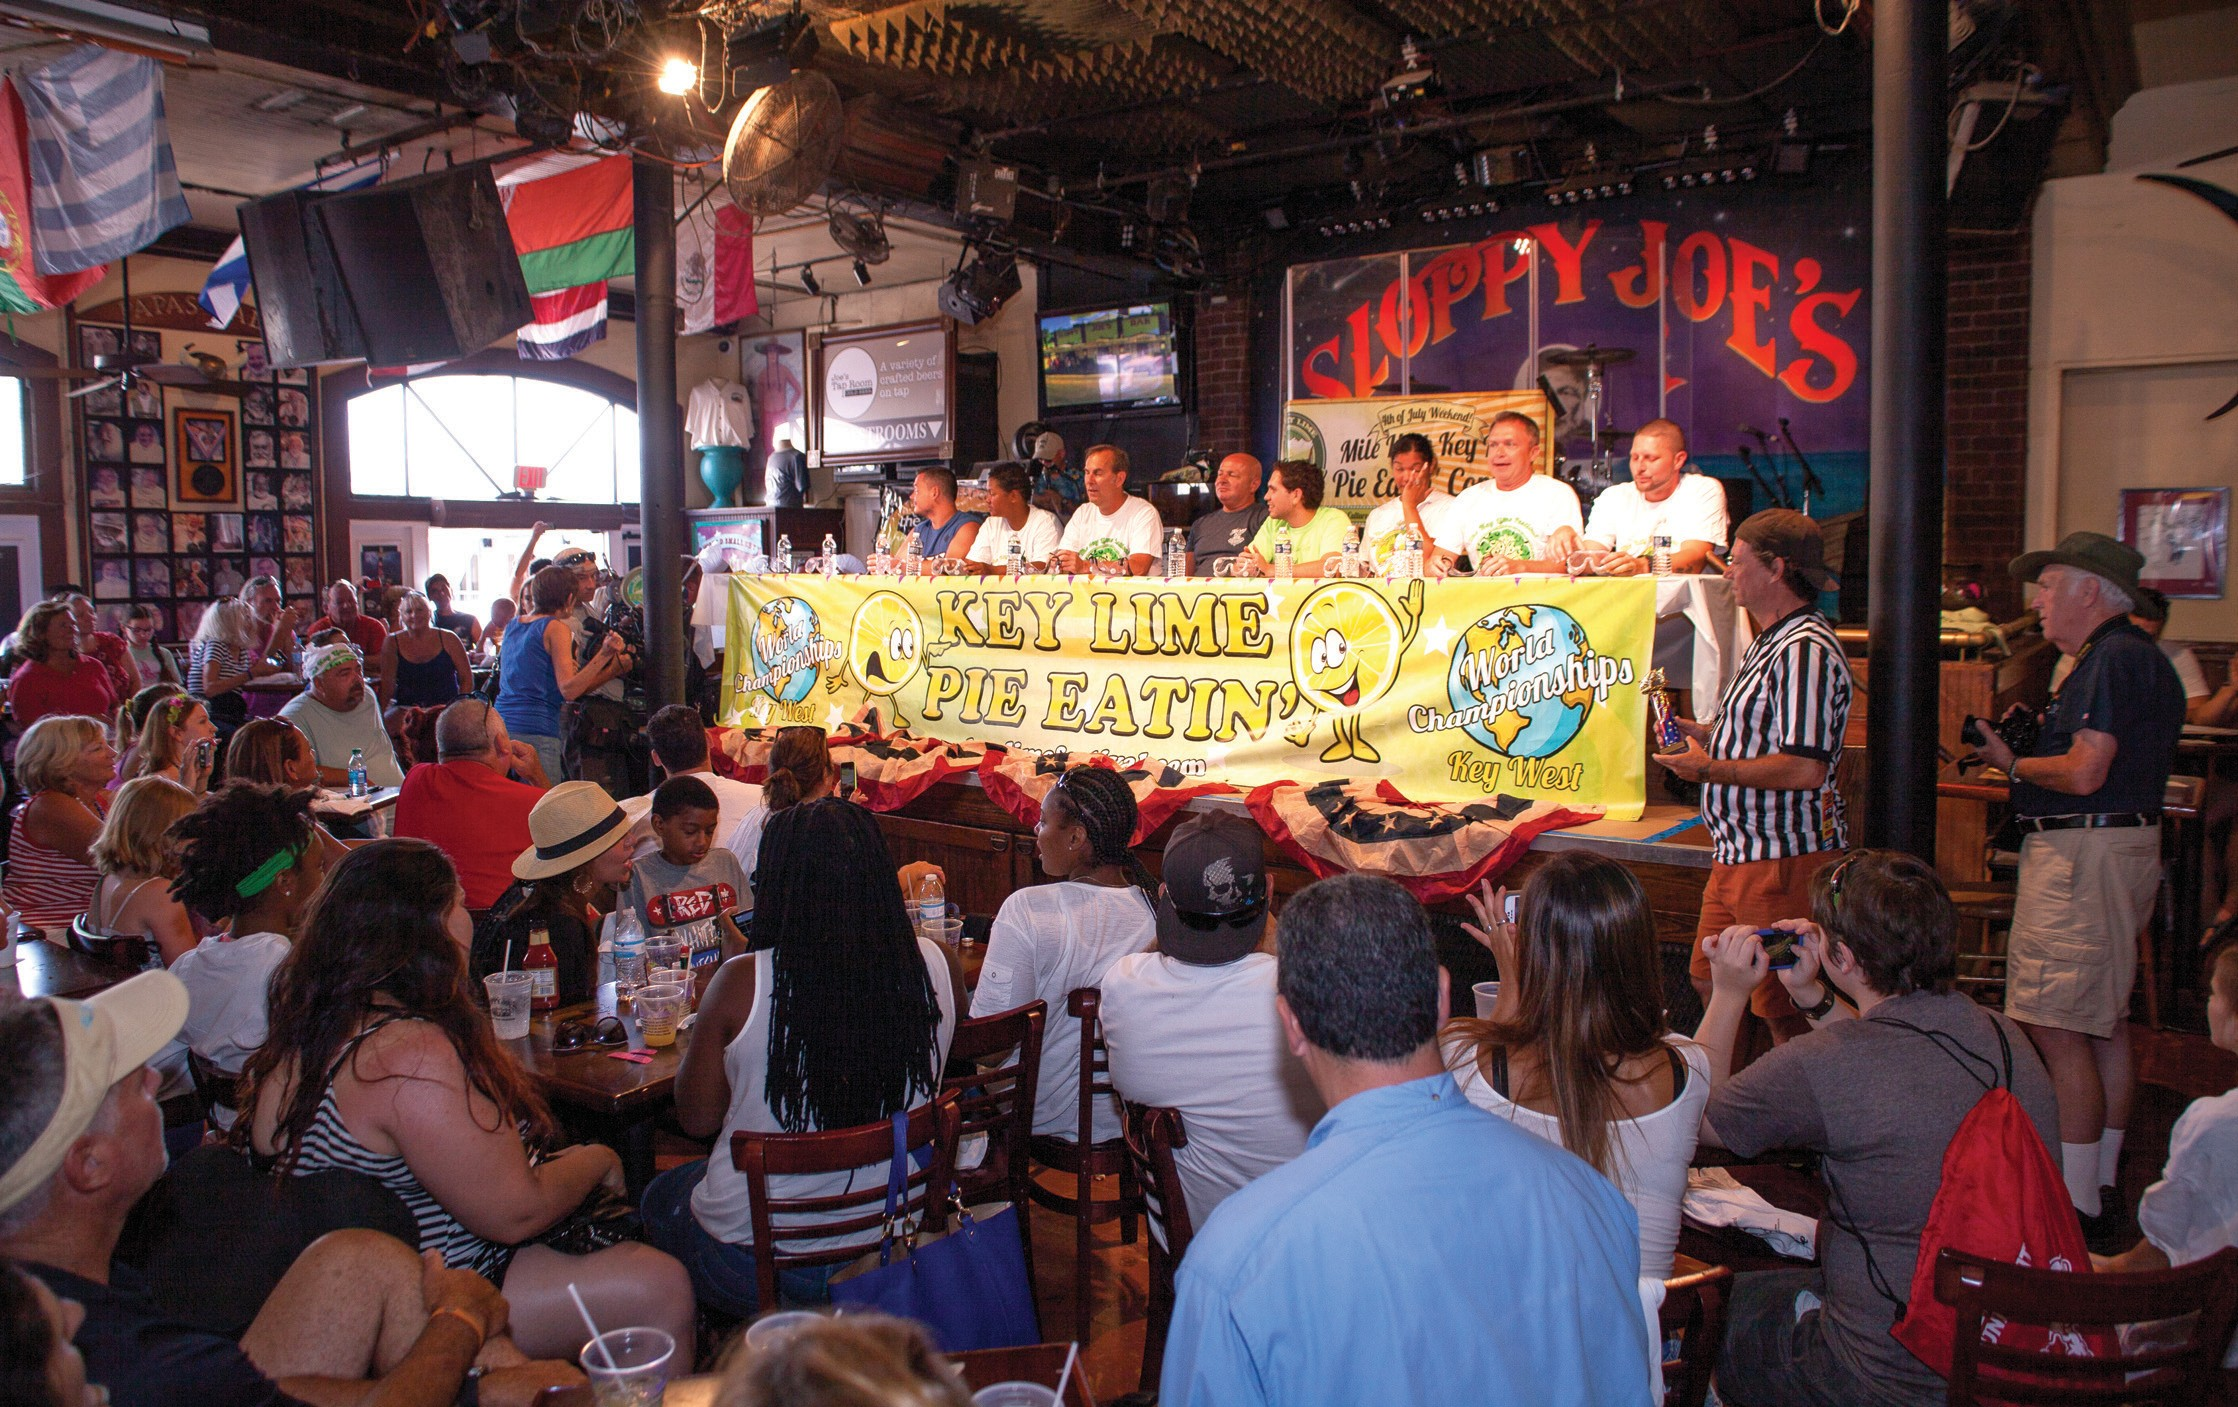 The pie-eating contest draws crowds and Key lime enthusiasts.